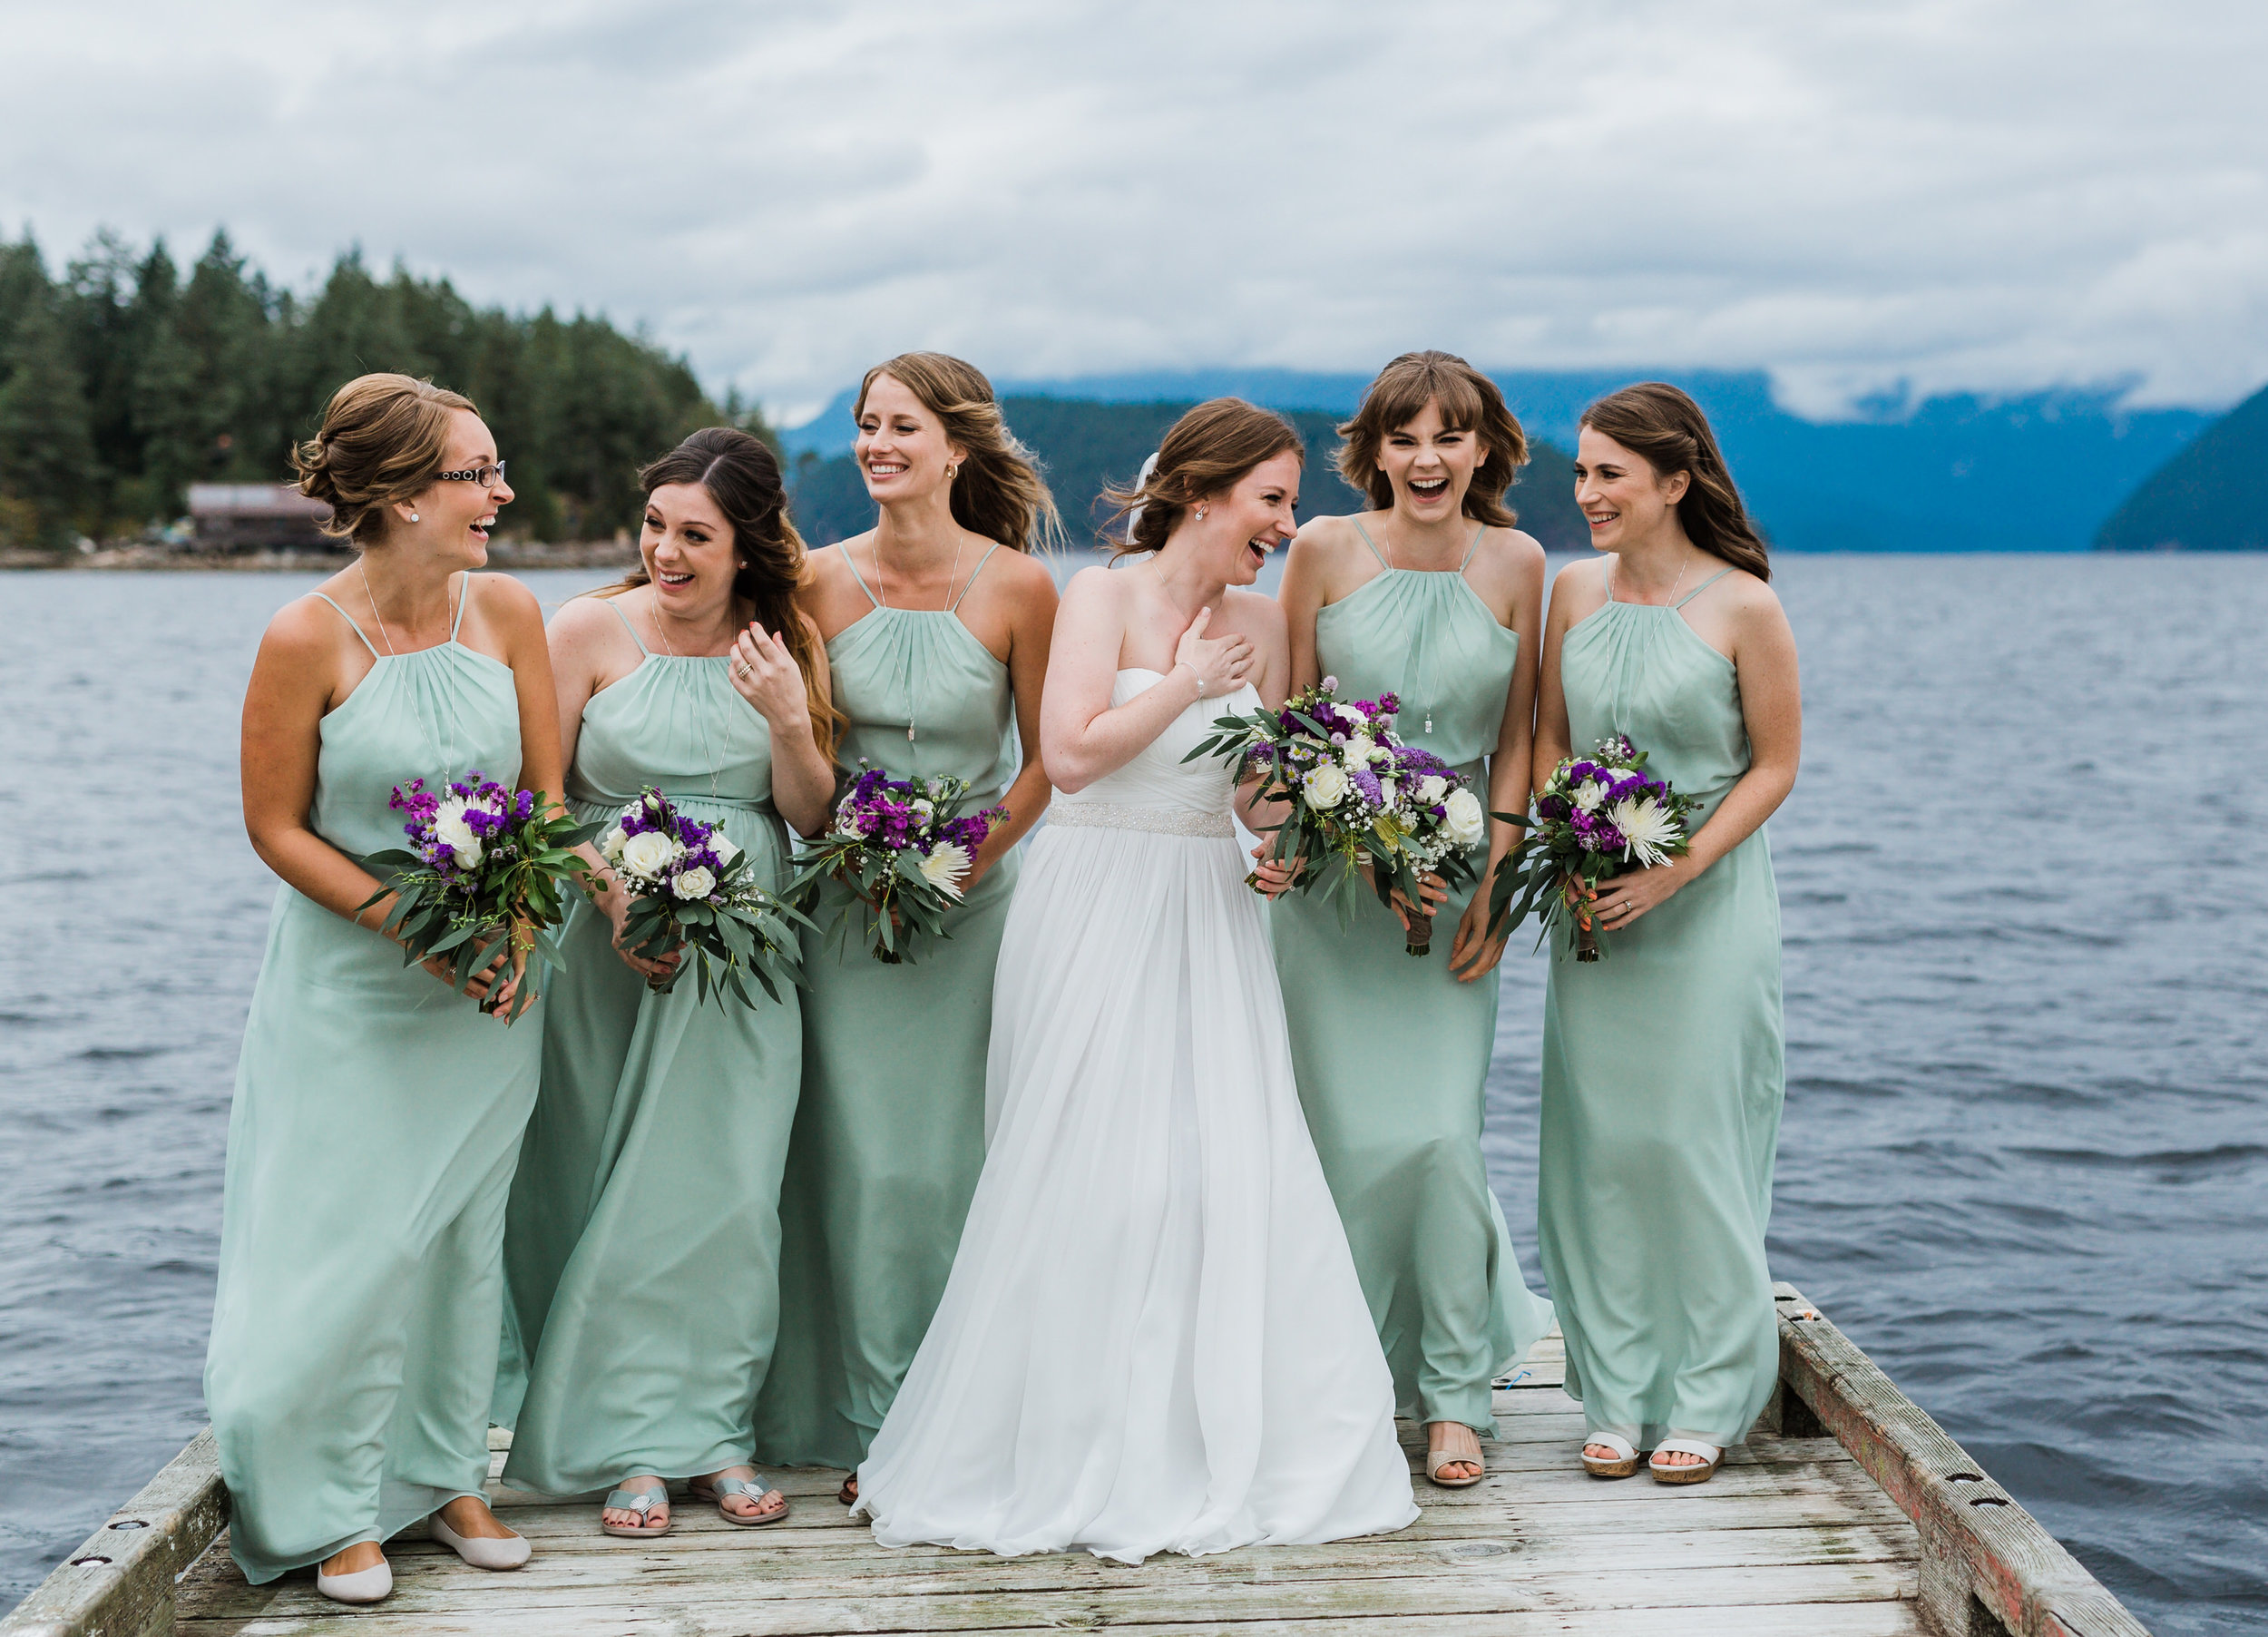 West Coast Wilderness Lodge Wedding Photos - Vancouver Wedding Photographer & Videographer - Sunshine Coast Wedding Photos - Sunshine Coast Wedding Photographer - Jennifer Picard Photography - IMG_5829.jpg